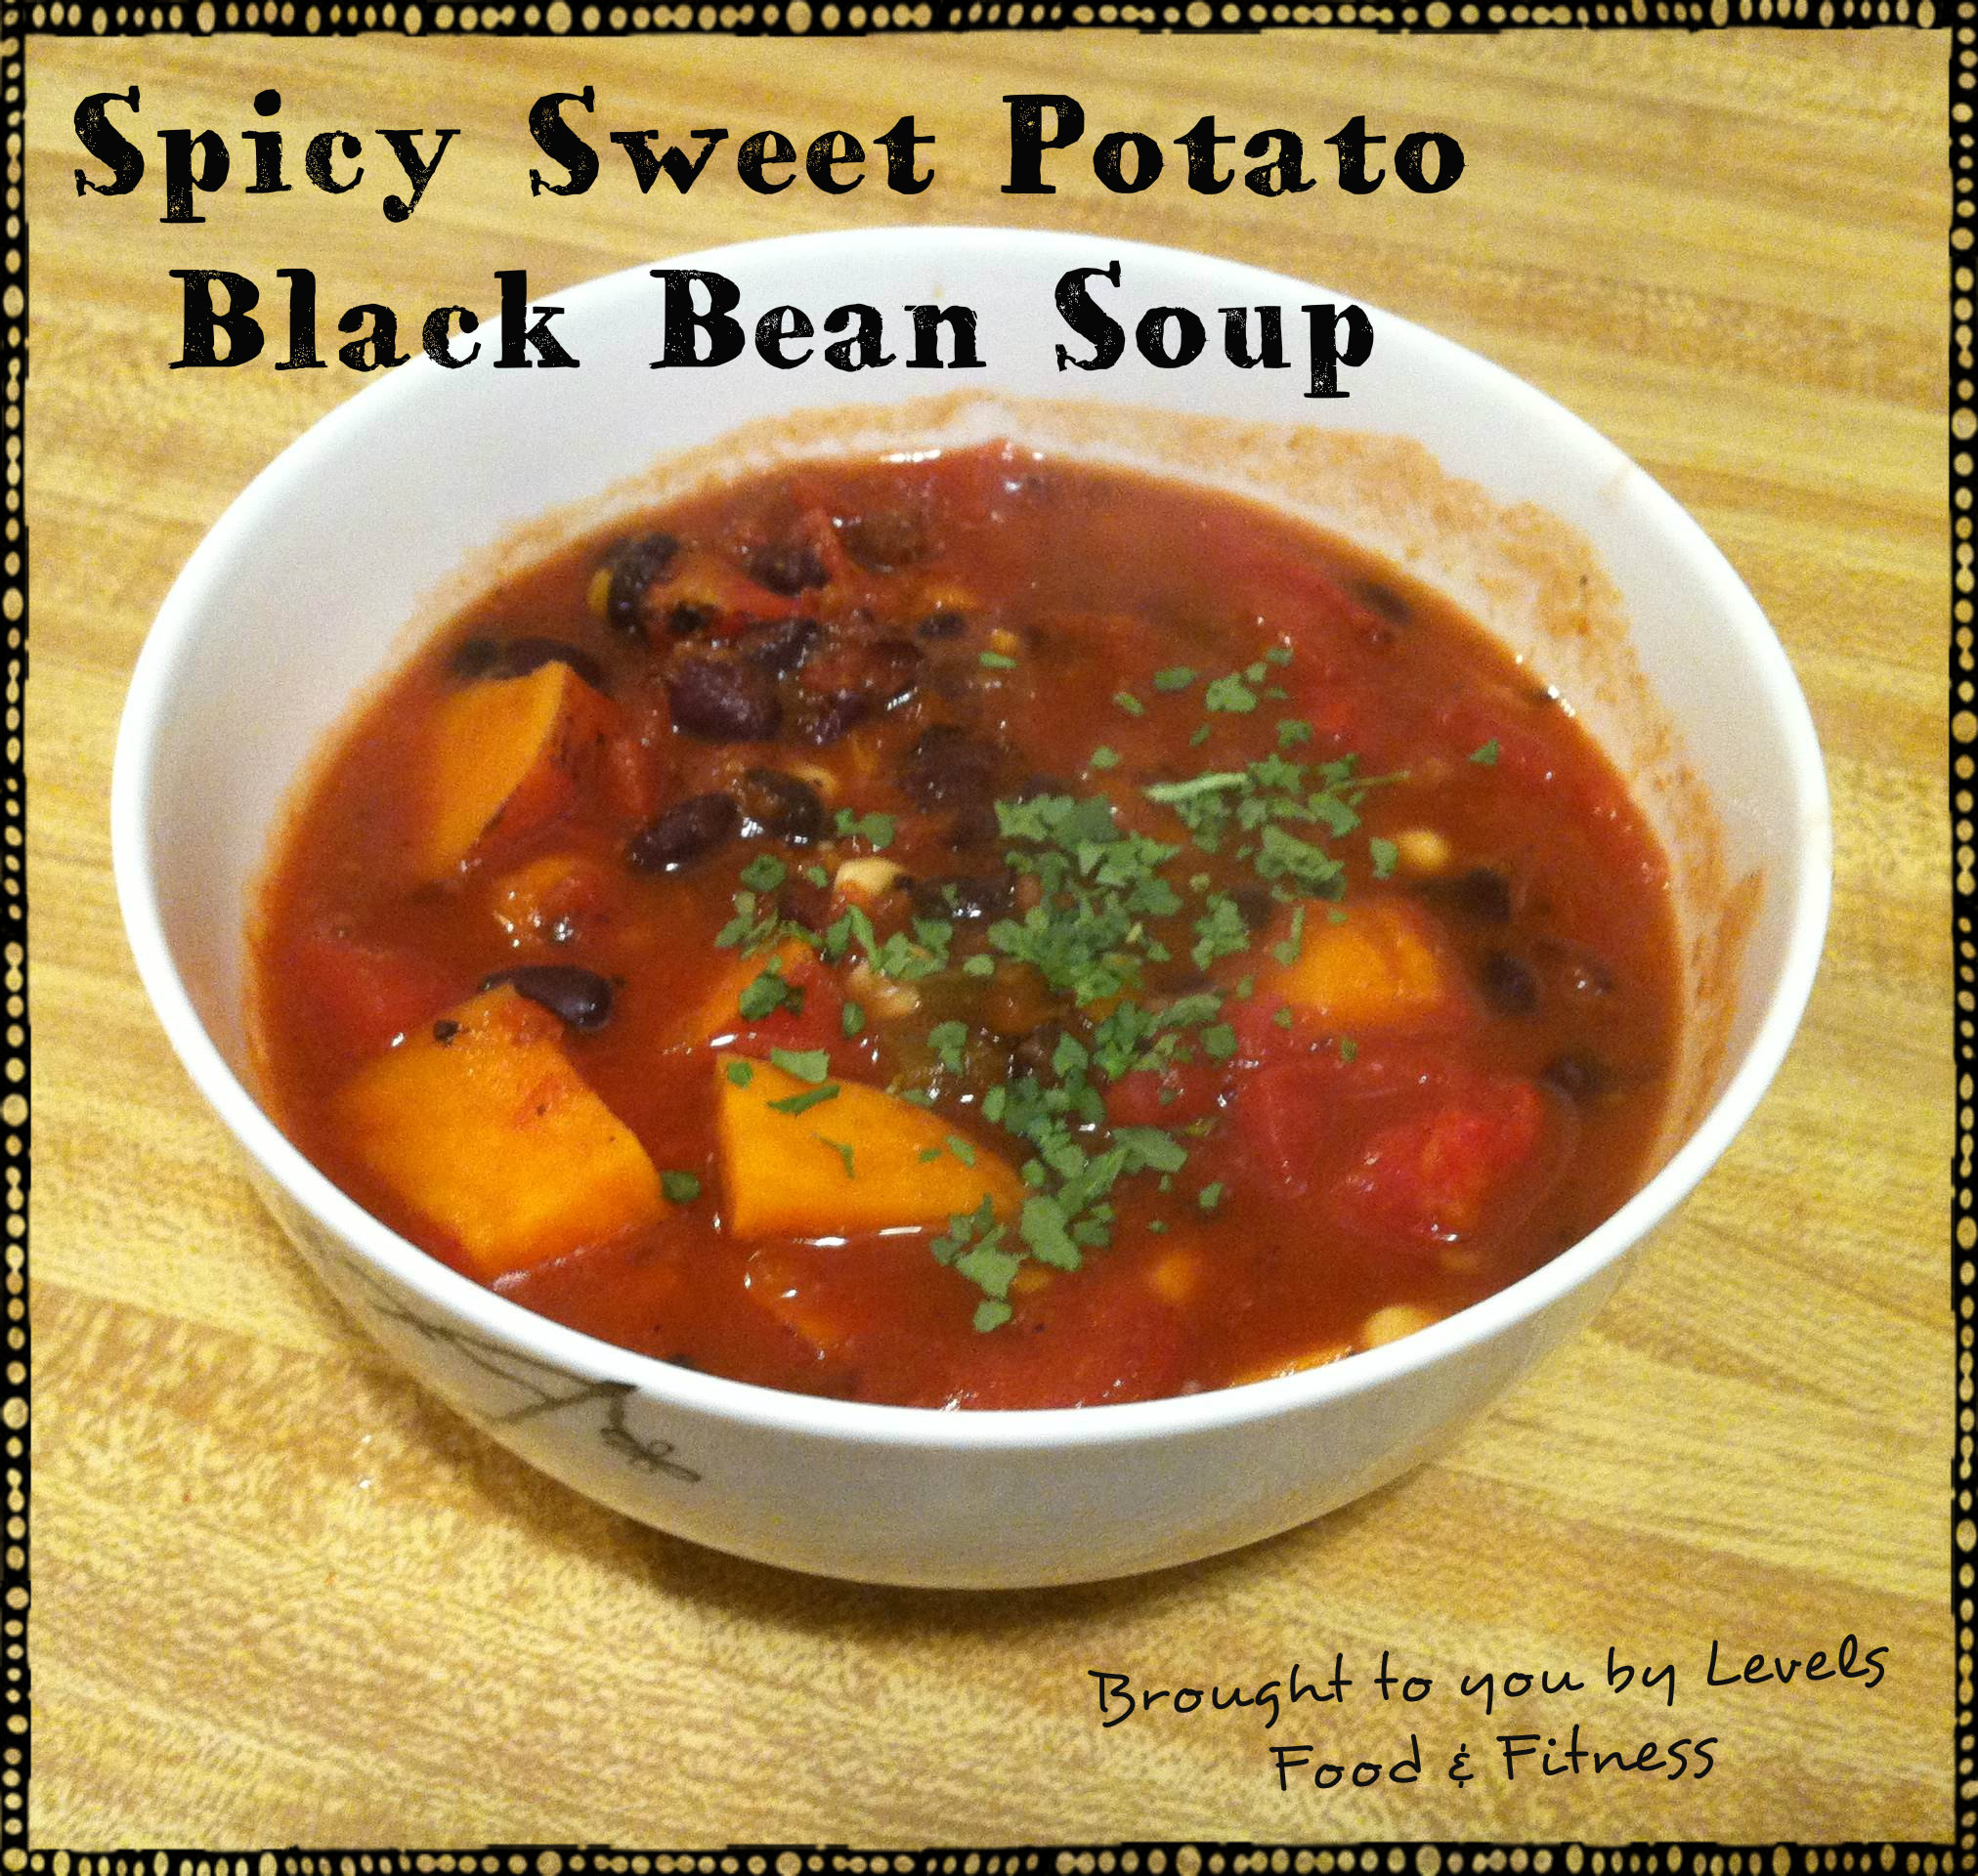 WIAW featuring this week's star: Spicy Sweet Potato Black Bean Soup